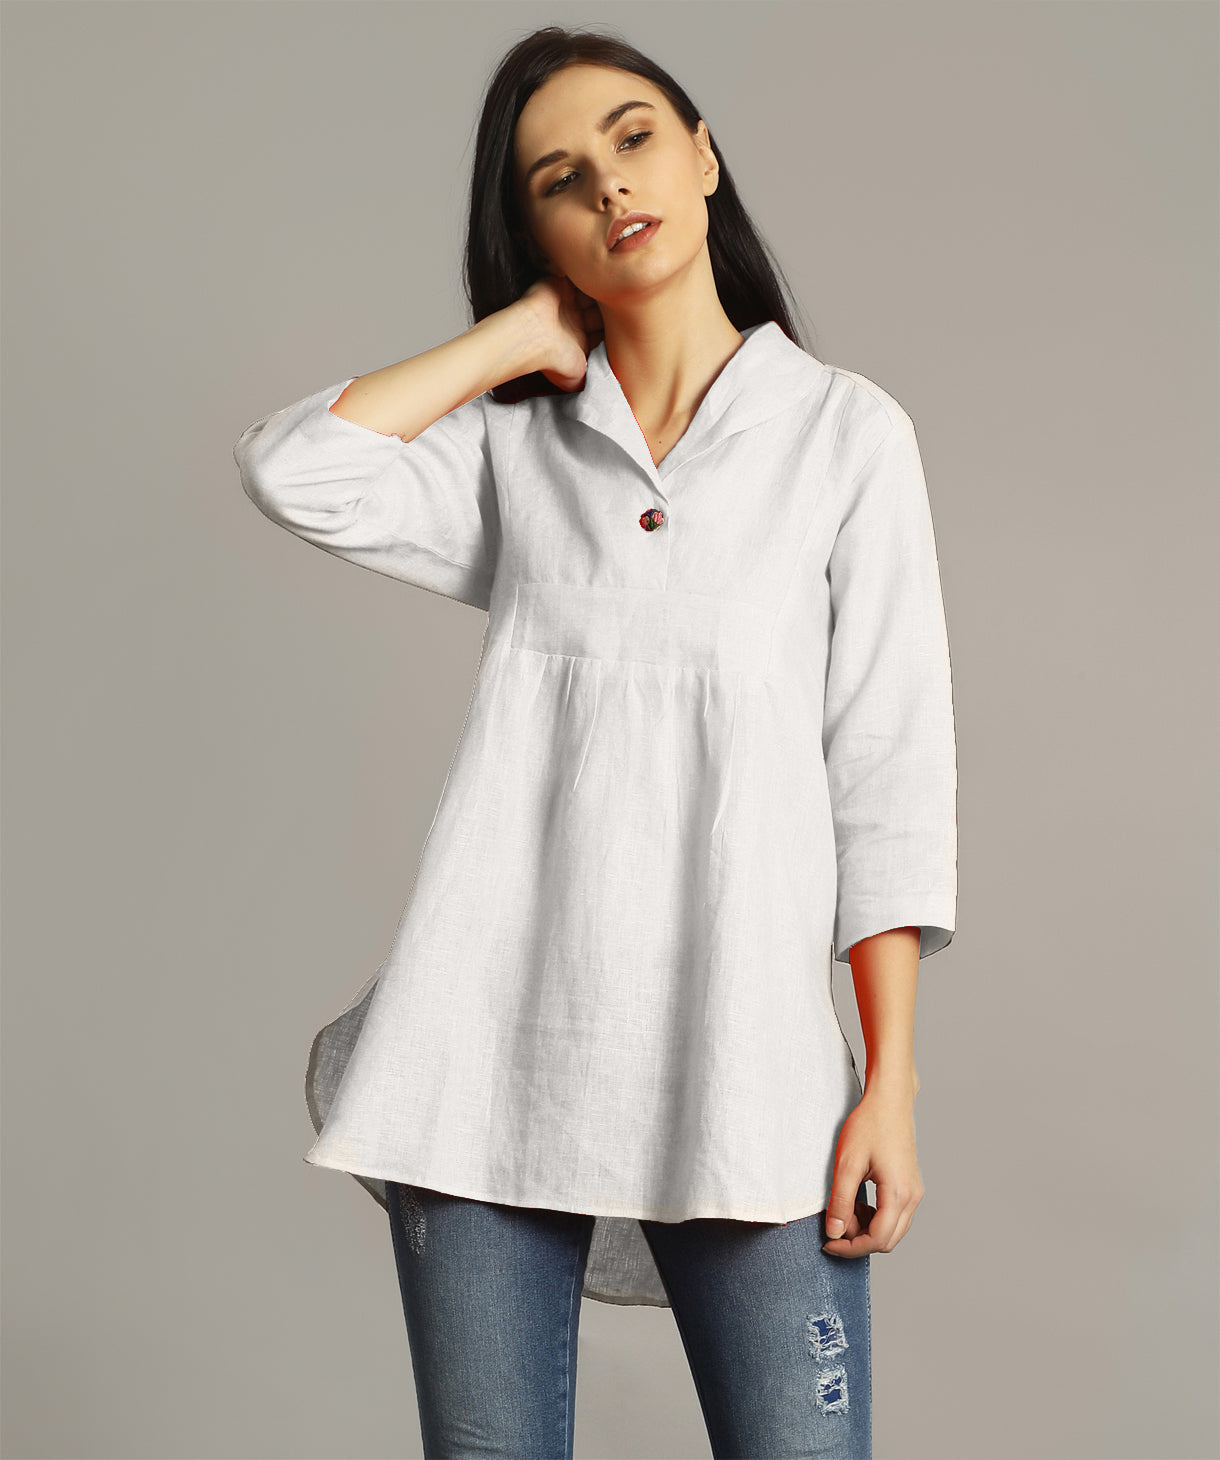 White High-Low Handloom Tunic - Uptownie